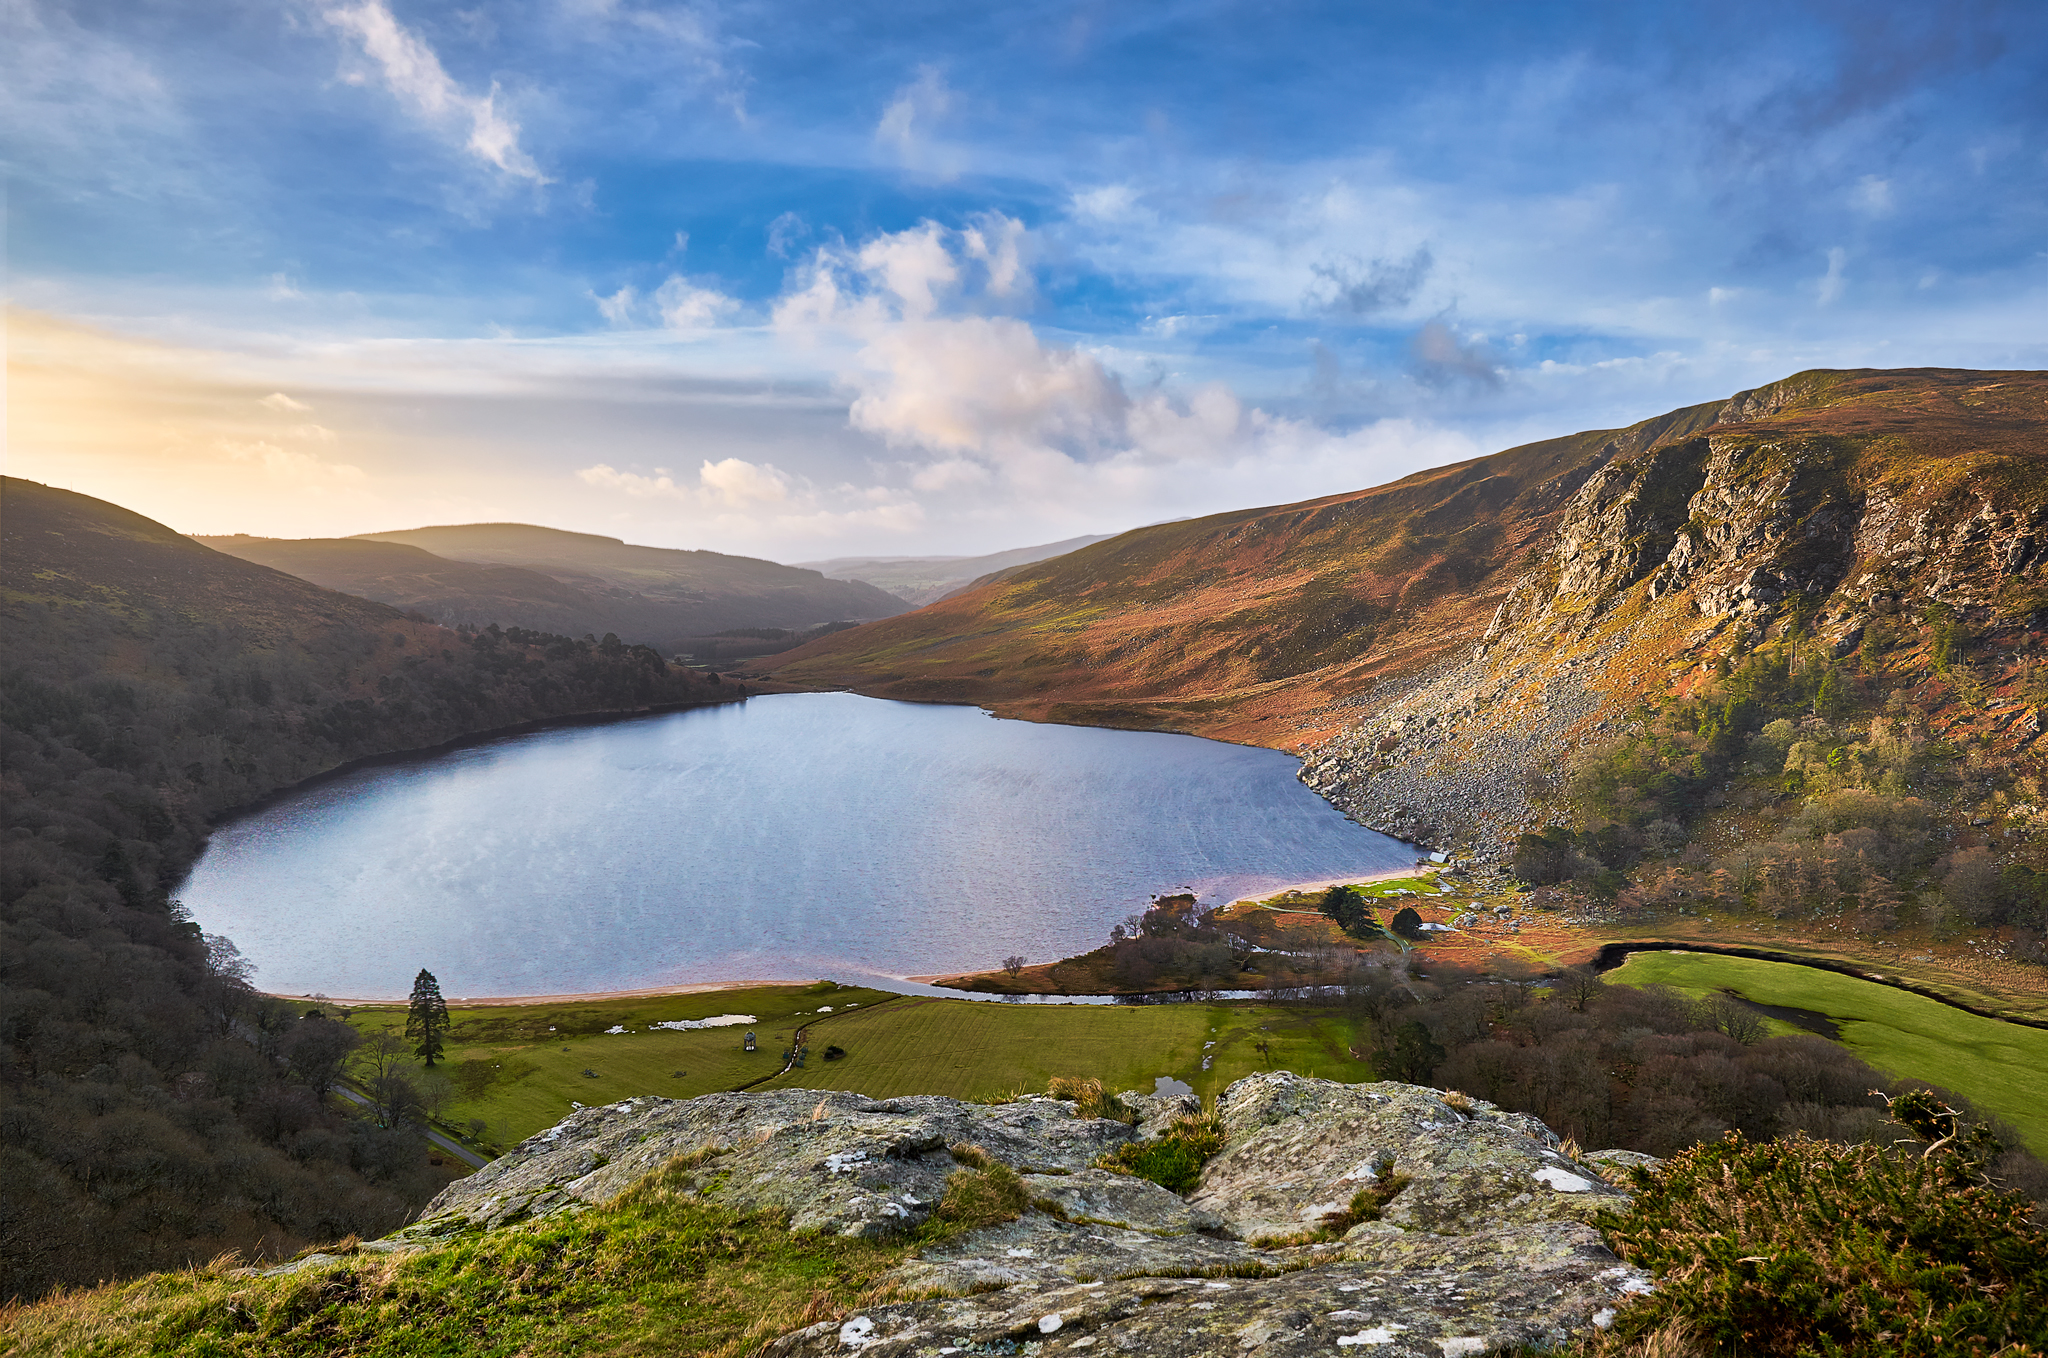 Lough Tay, Wicklow Mountains, Ireland, Ireland